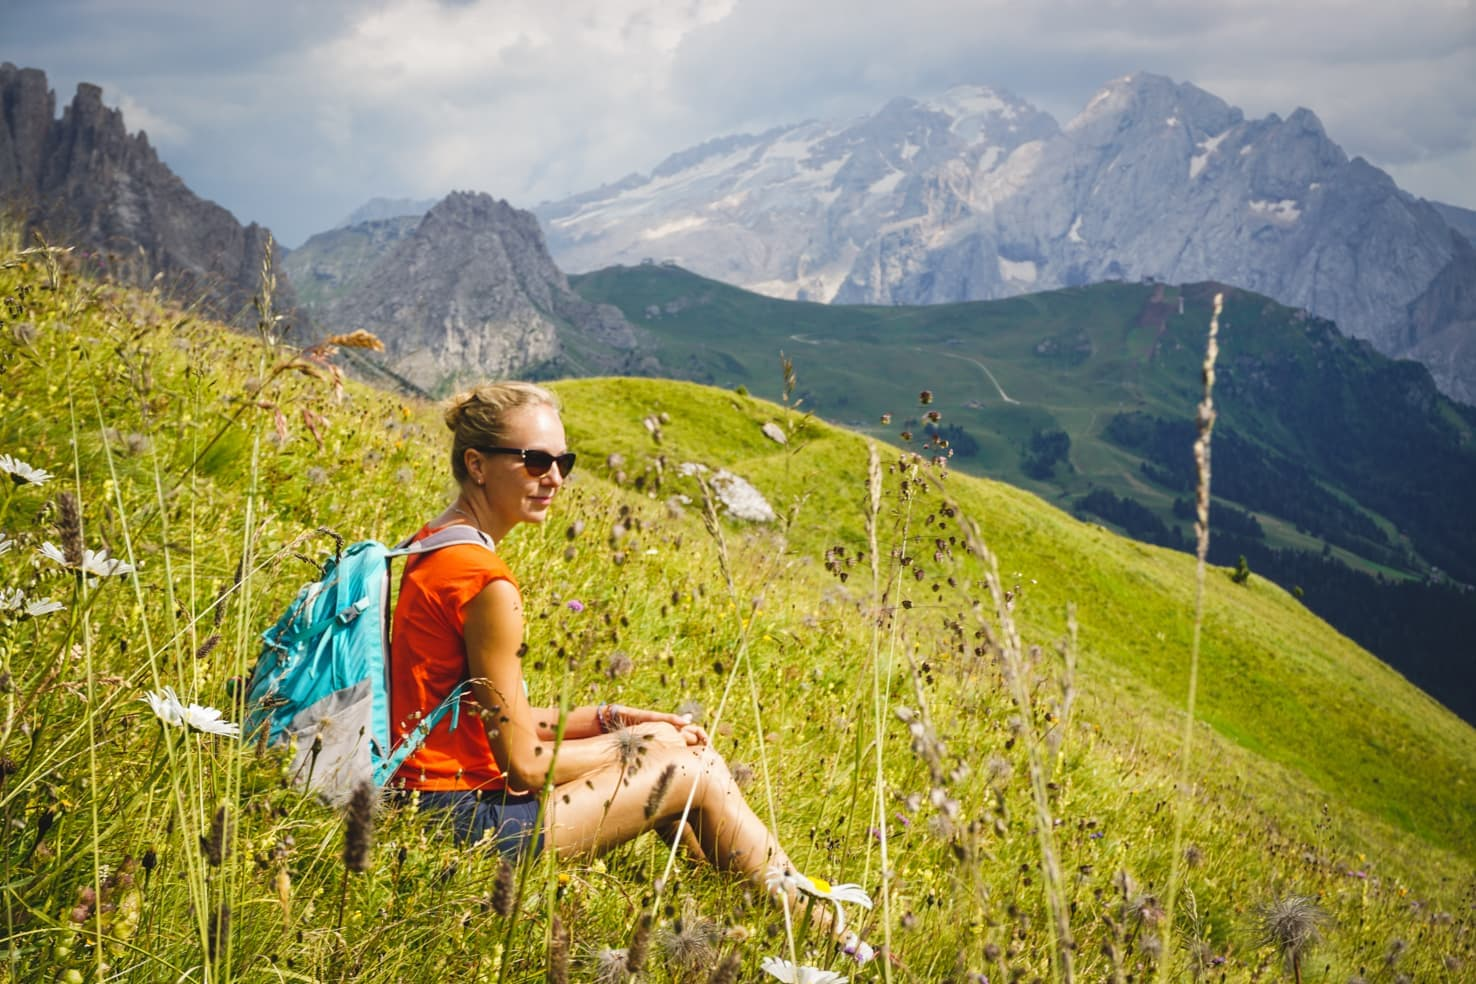 Hiking packing list for summer in the mountains - hiking in Italian Alps-3